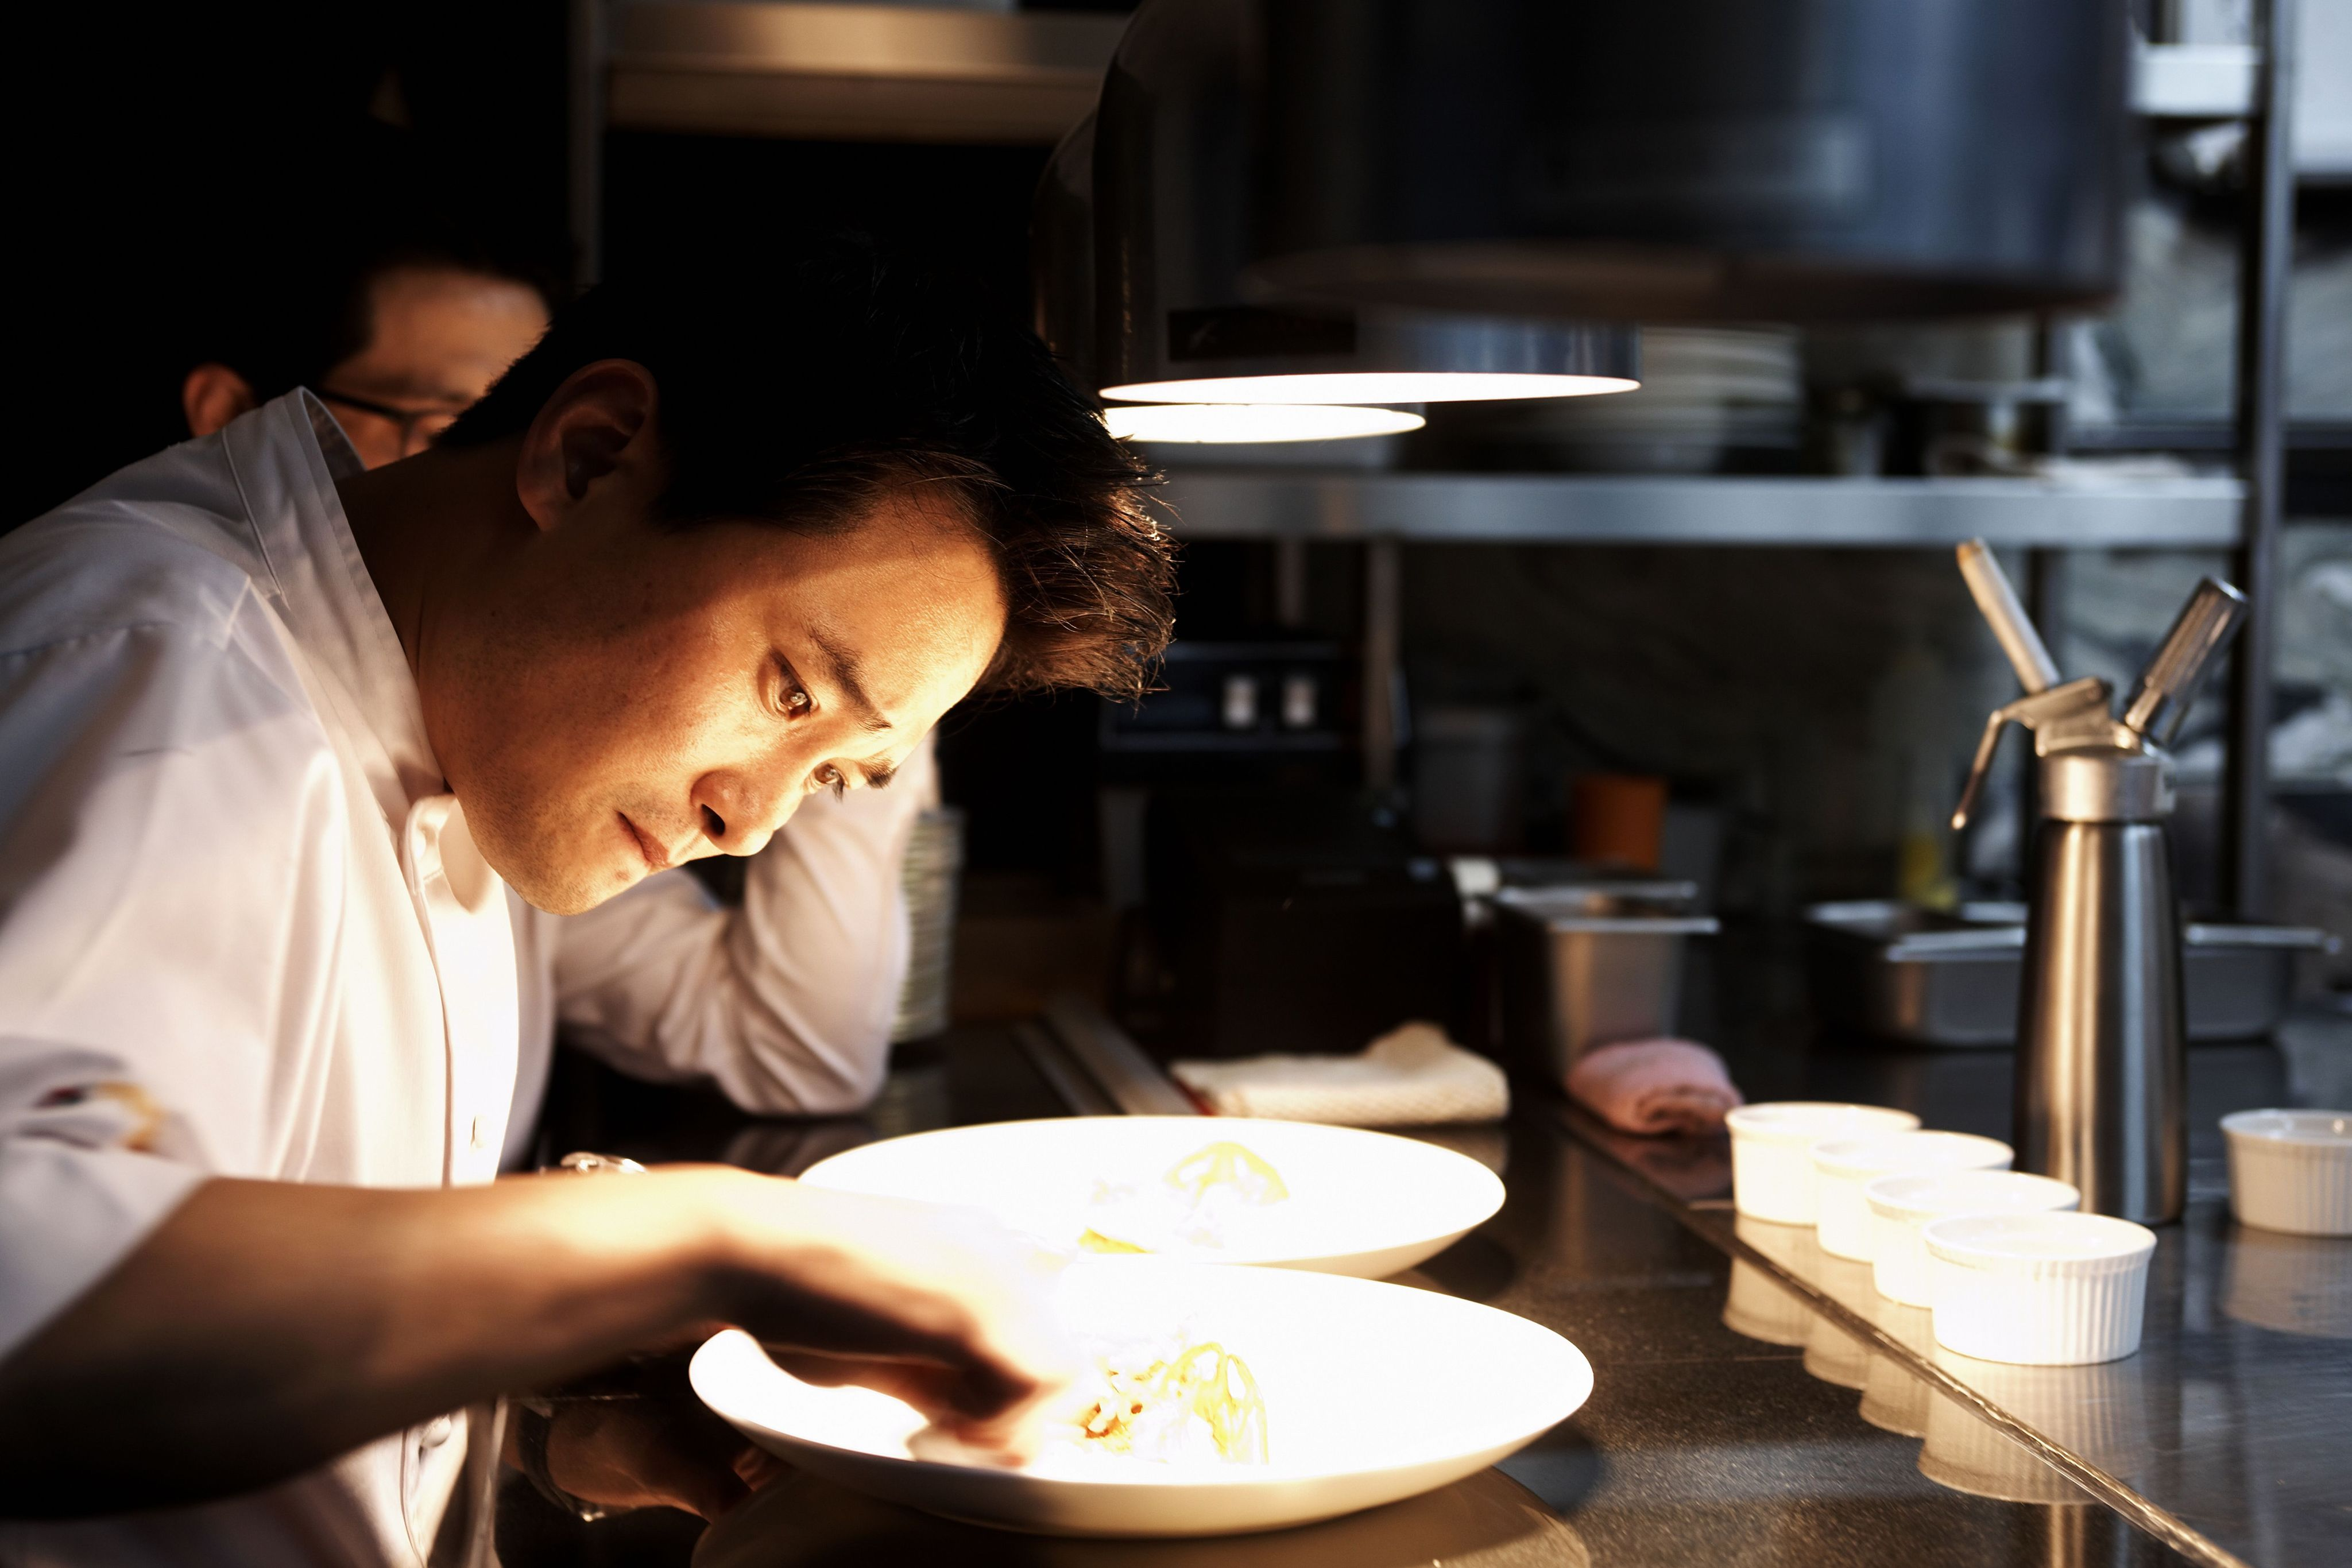 tatsu ese cuisine goes korean  kwon  kuali chef edward kwon pays great attention to detail in the food he cooks and serves